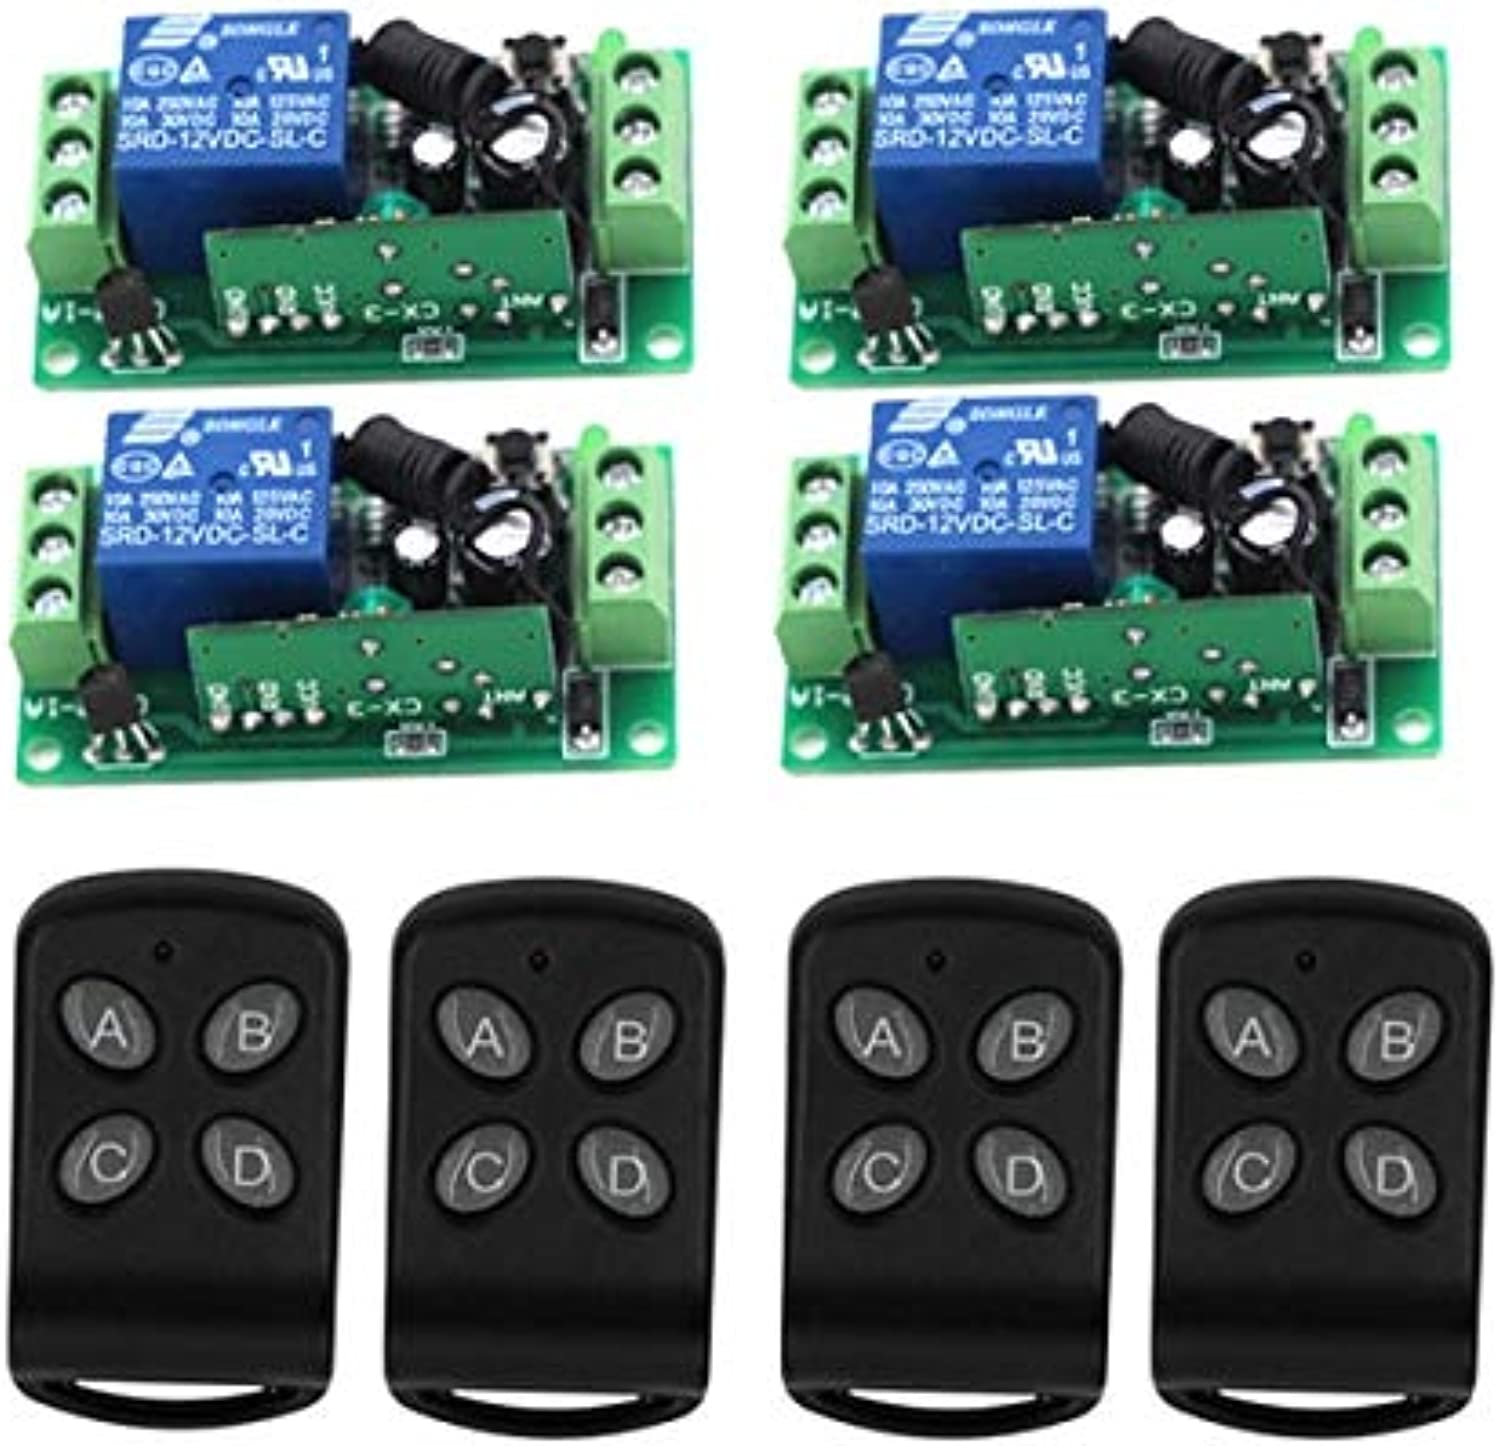 MITI-315Mhz DC12V 1CH RF Wireless Remote Control Switch 10A Relay Receiver Radio Switch SKU  5153